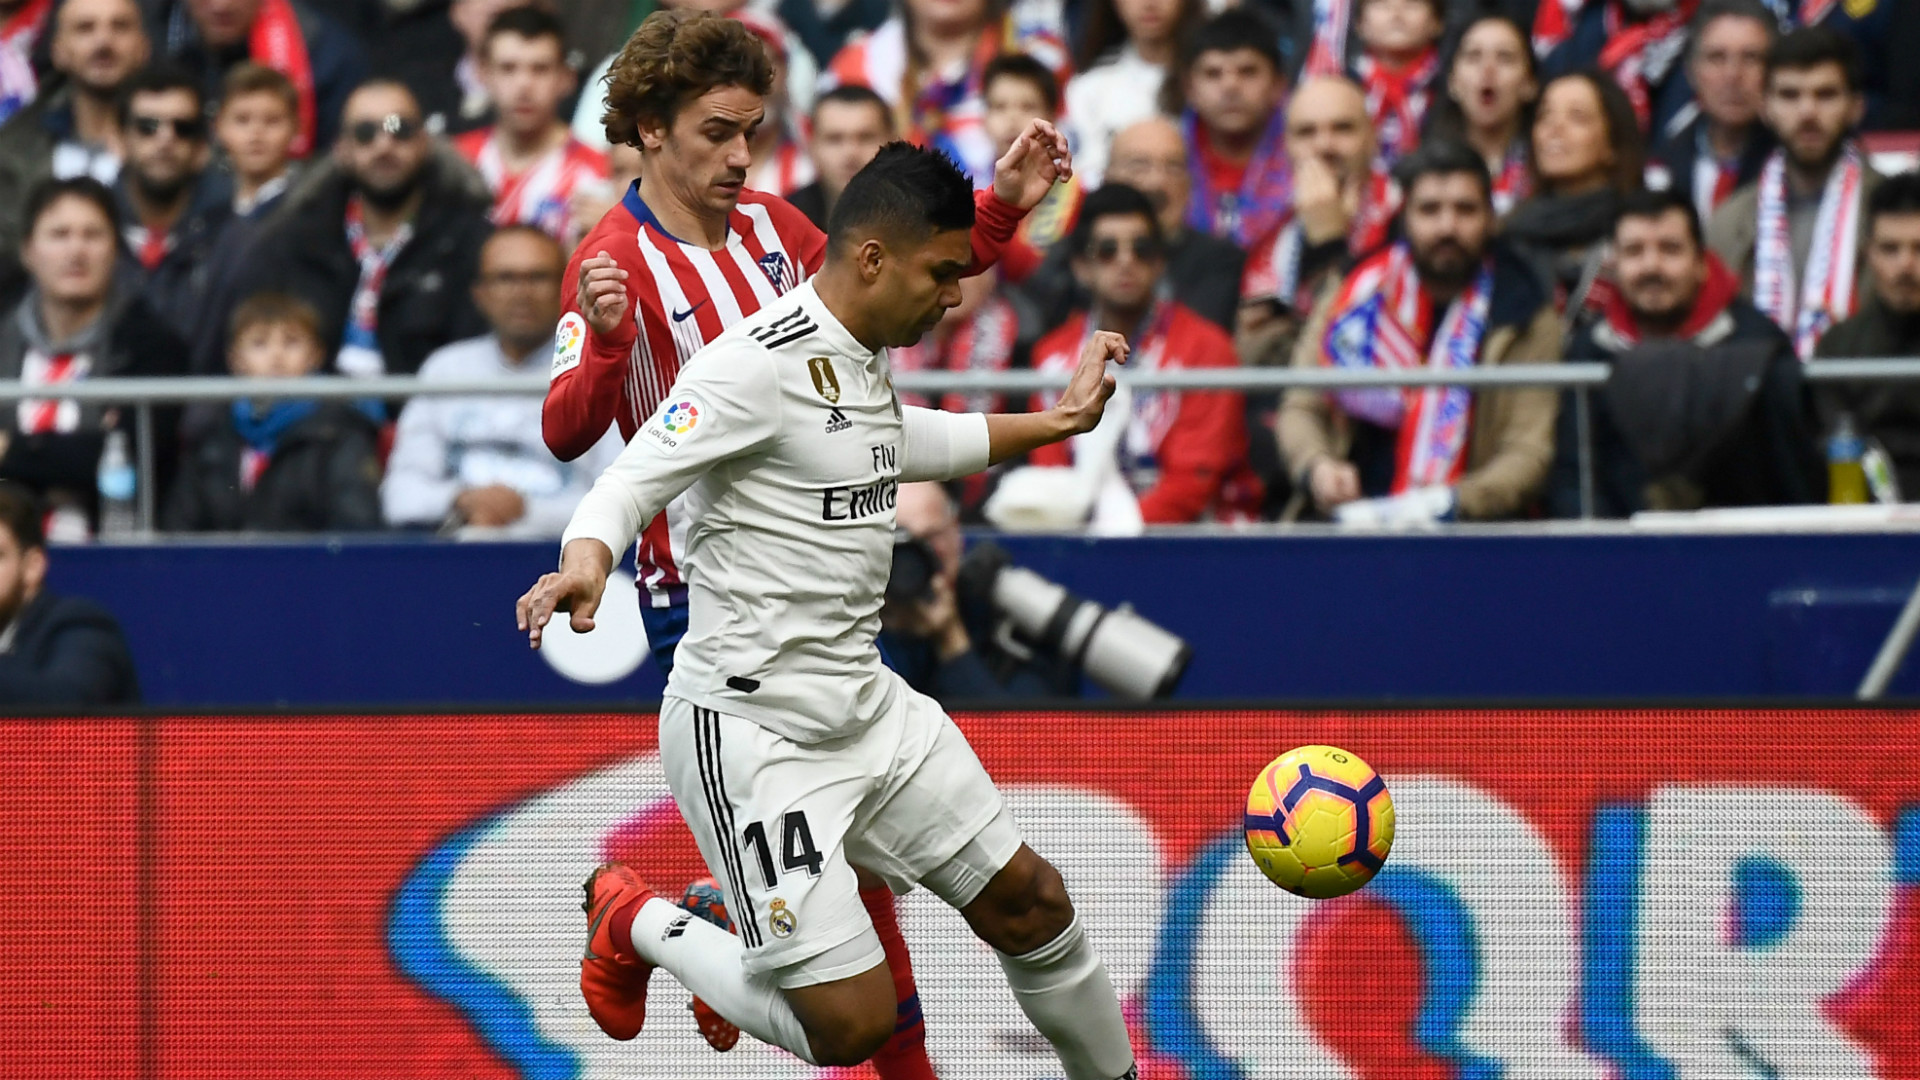 Casemiro Griezmann Atletico Madrid Real Madrid LaLiga